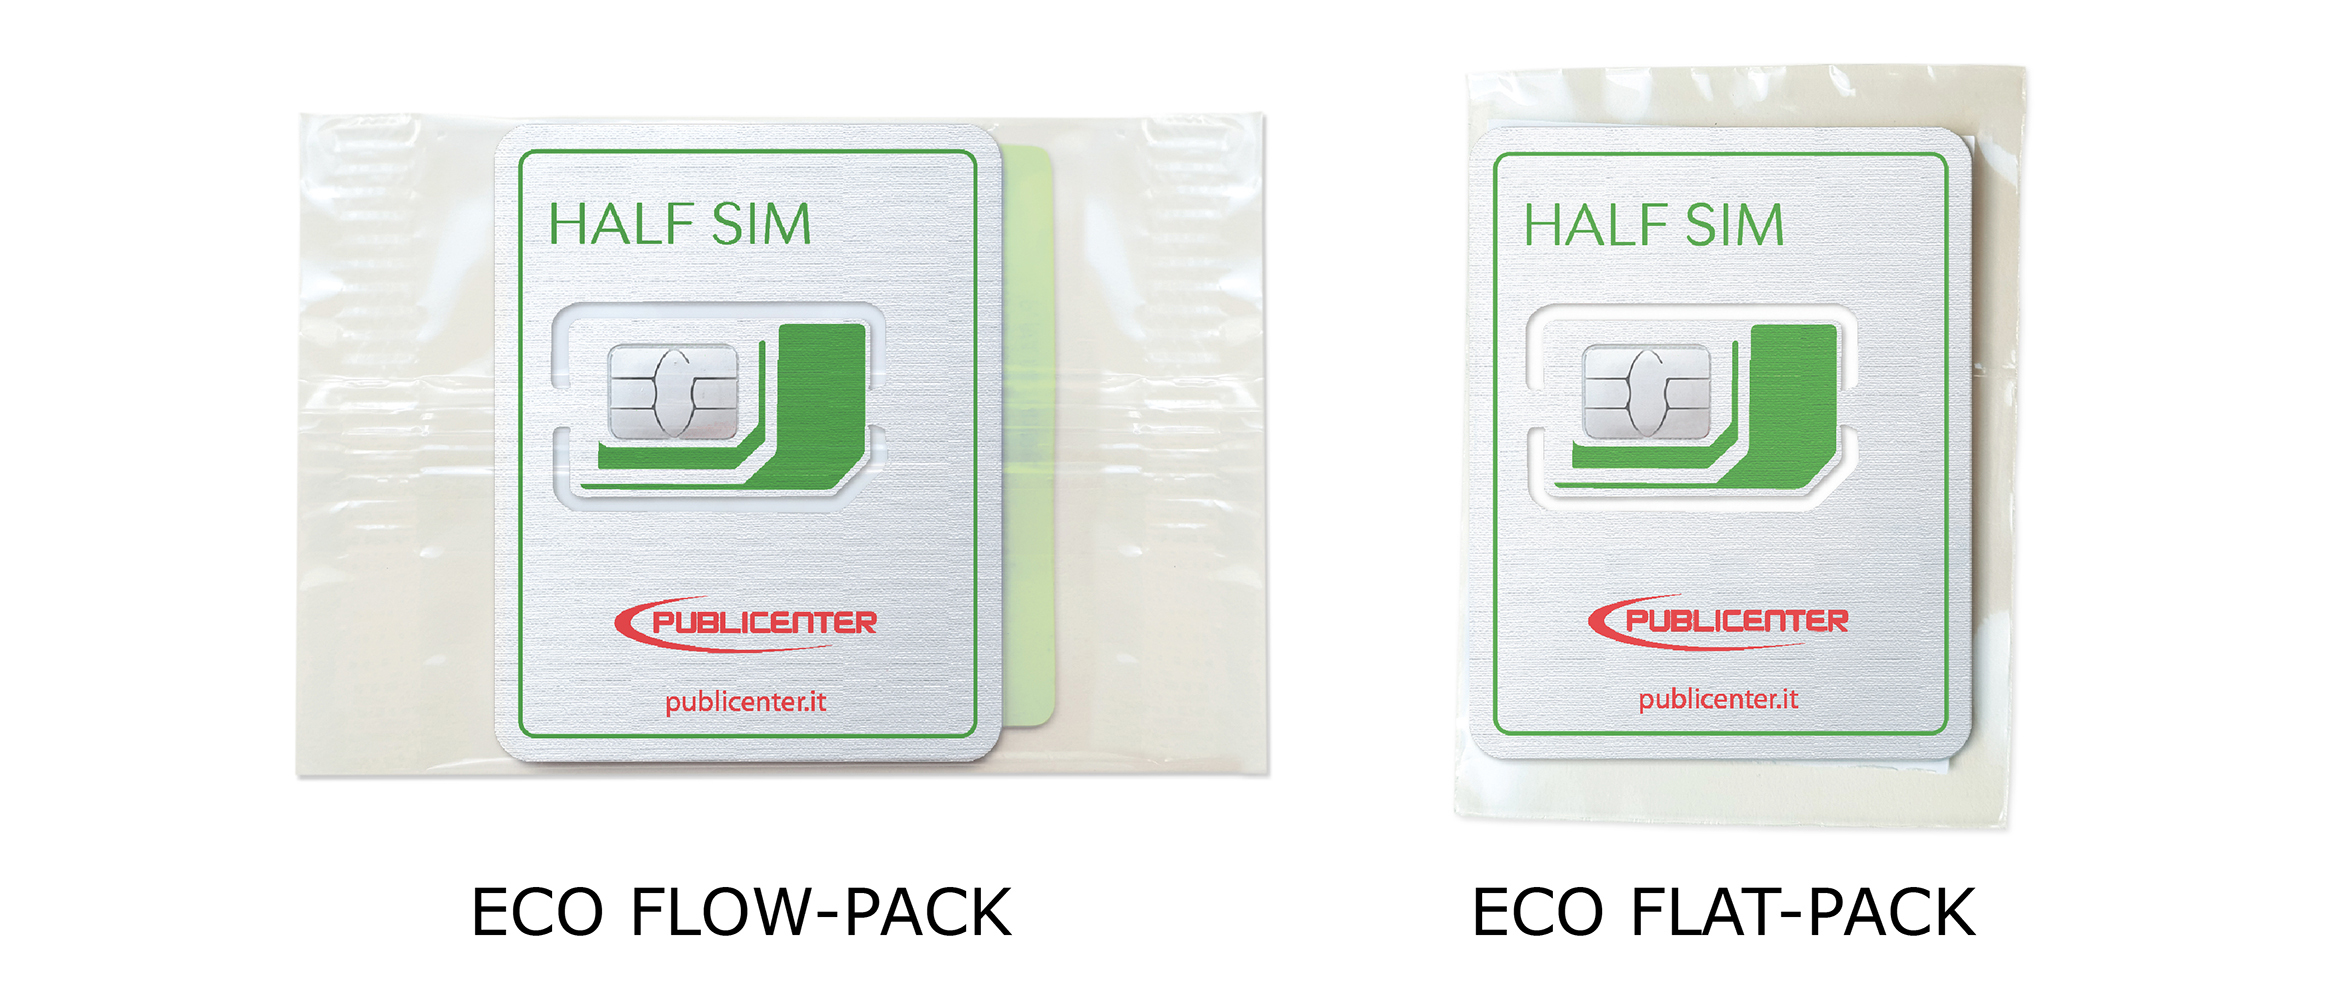 FLOW PACK AND FLAT PACK